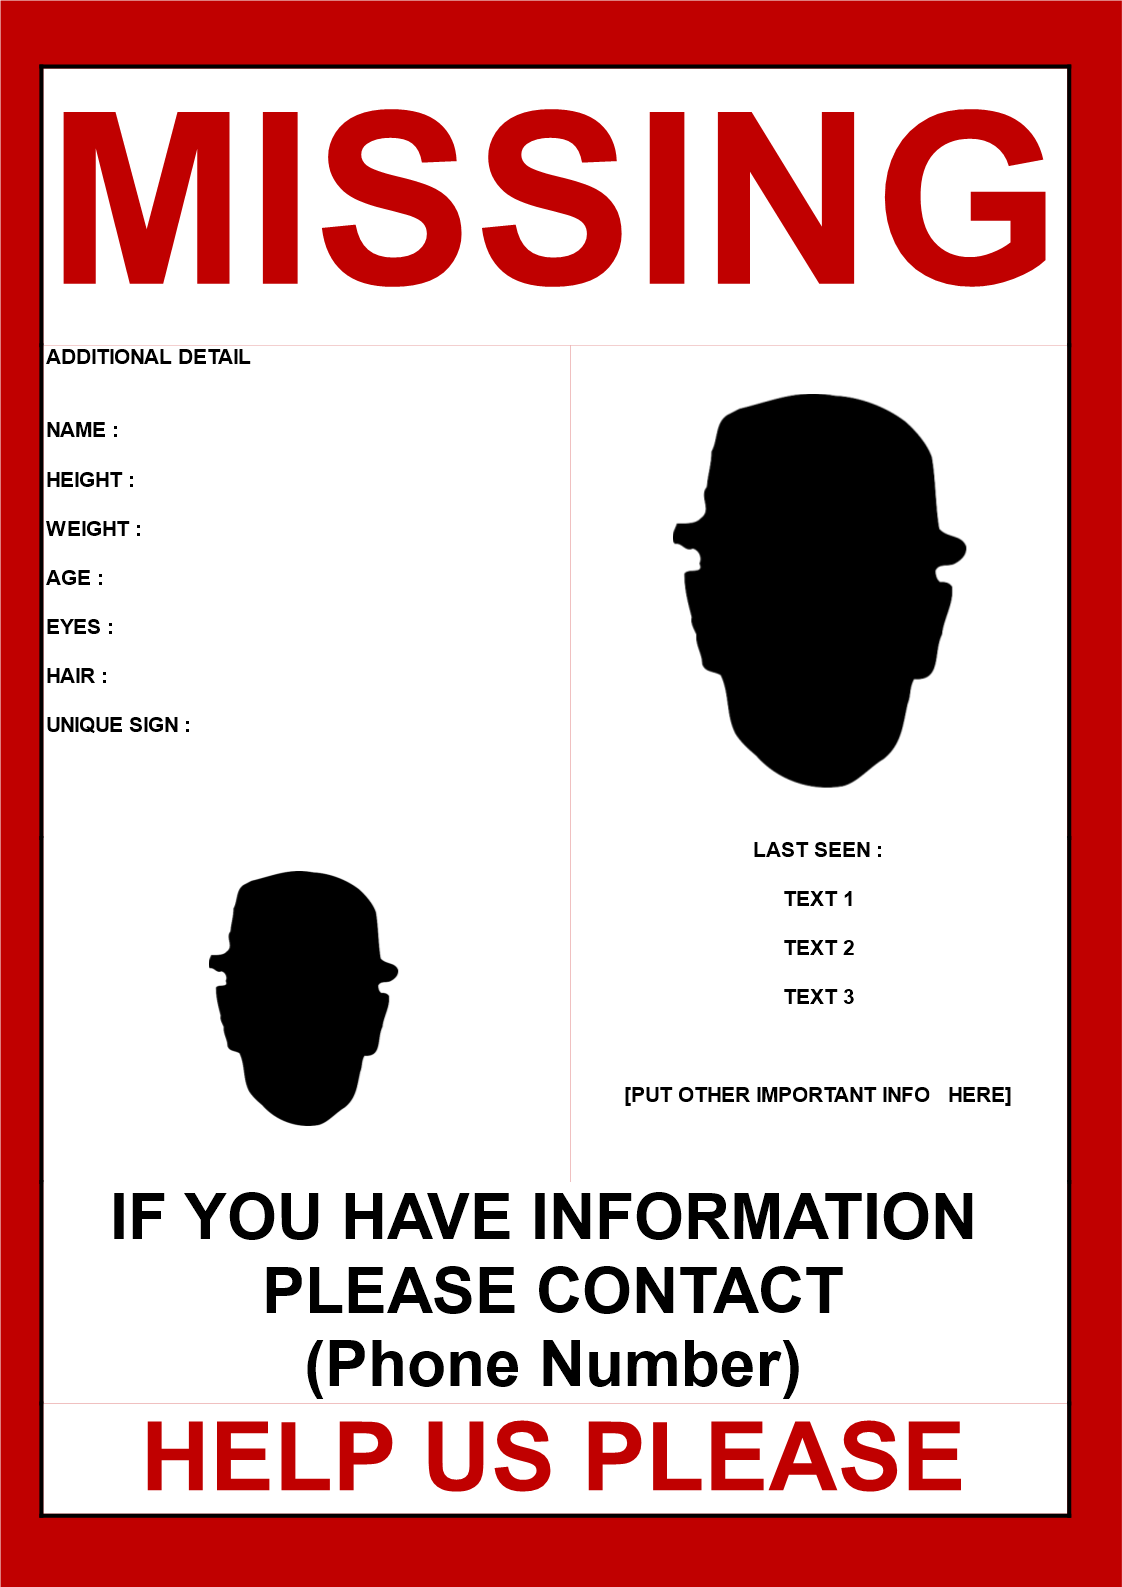 Free Missing person poster template 2 images | Templates at